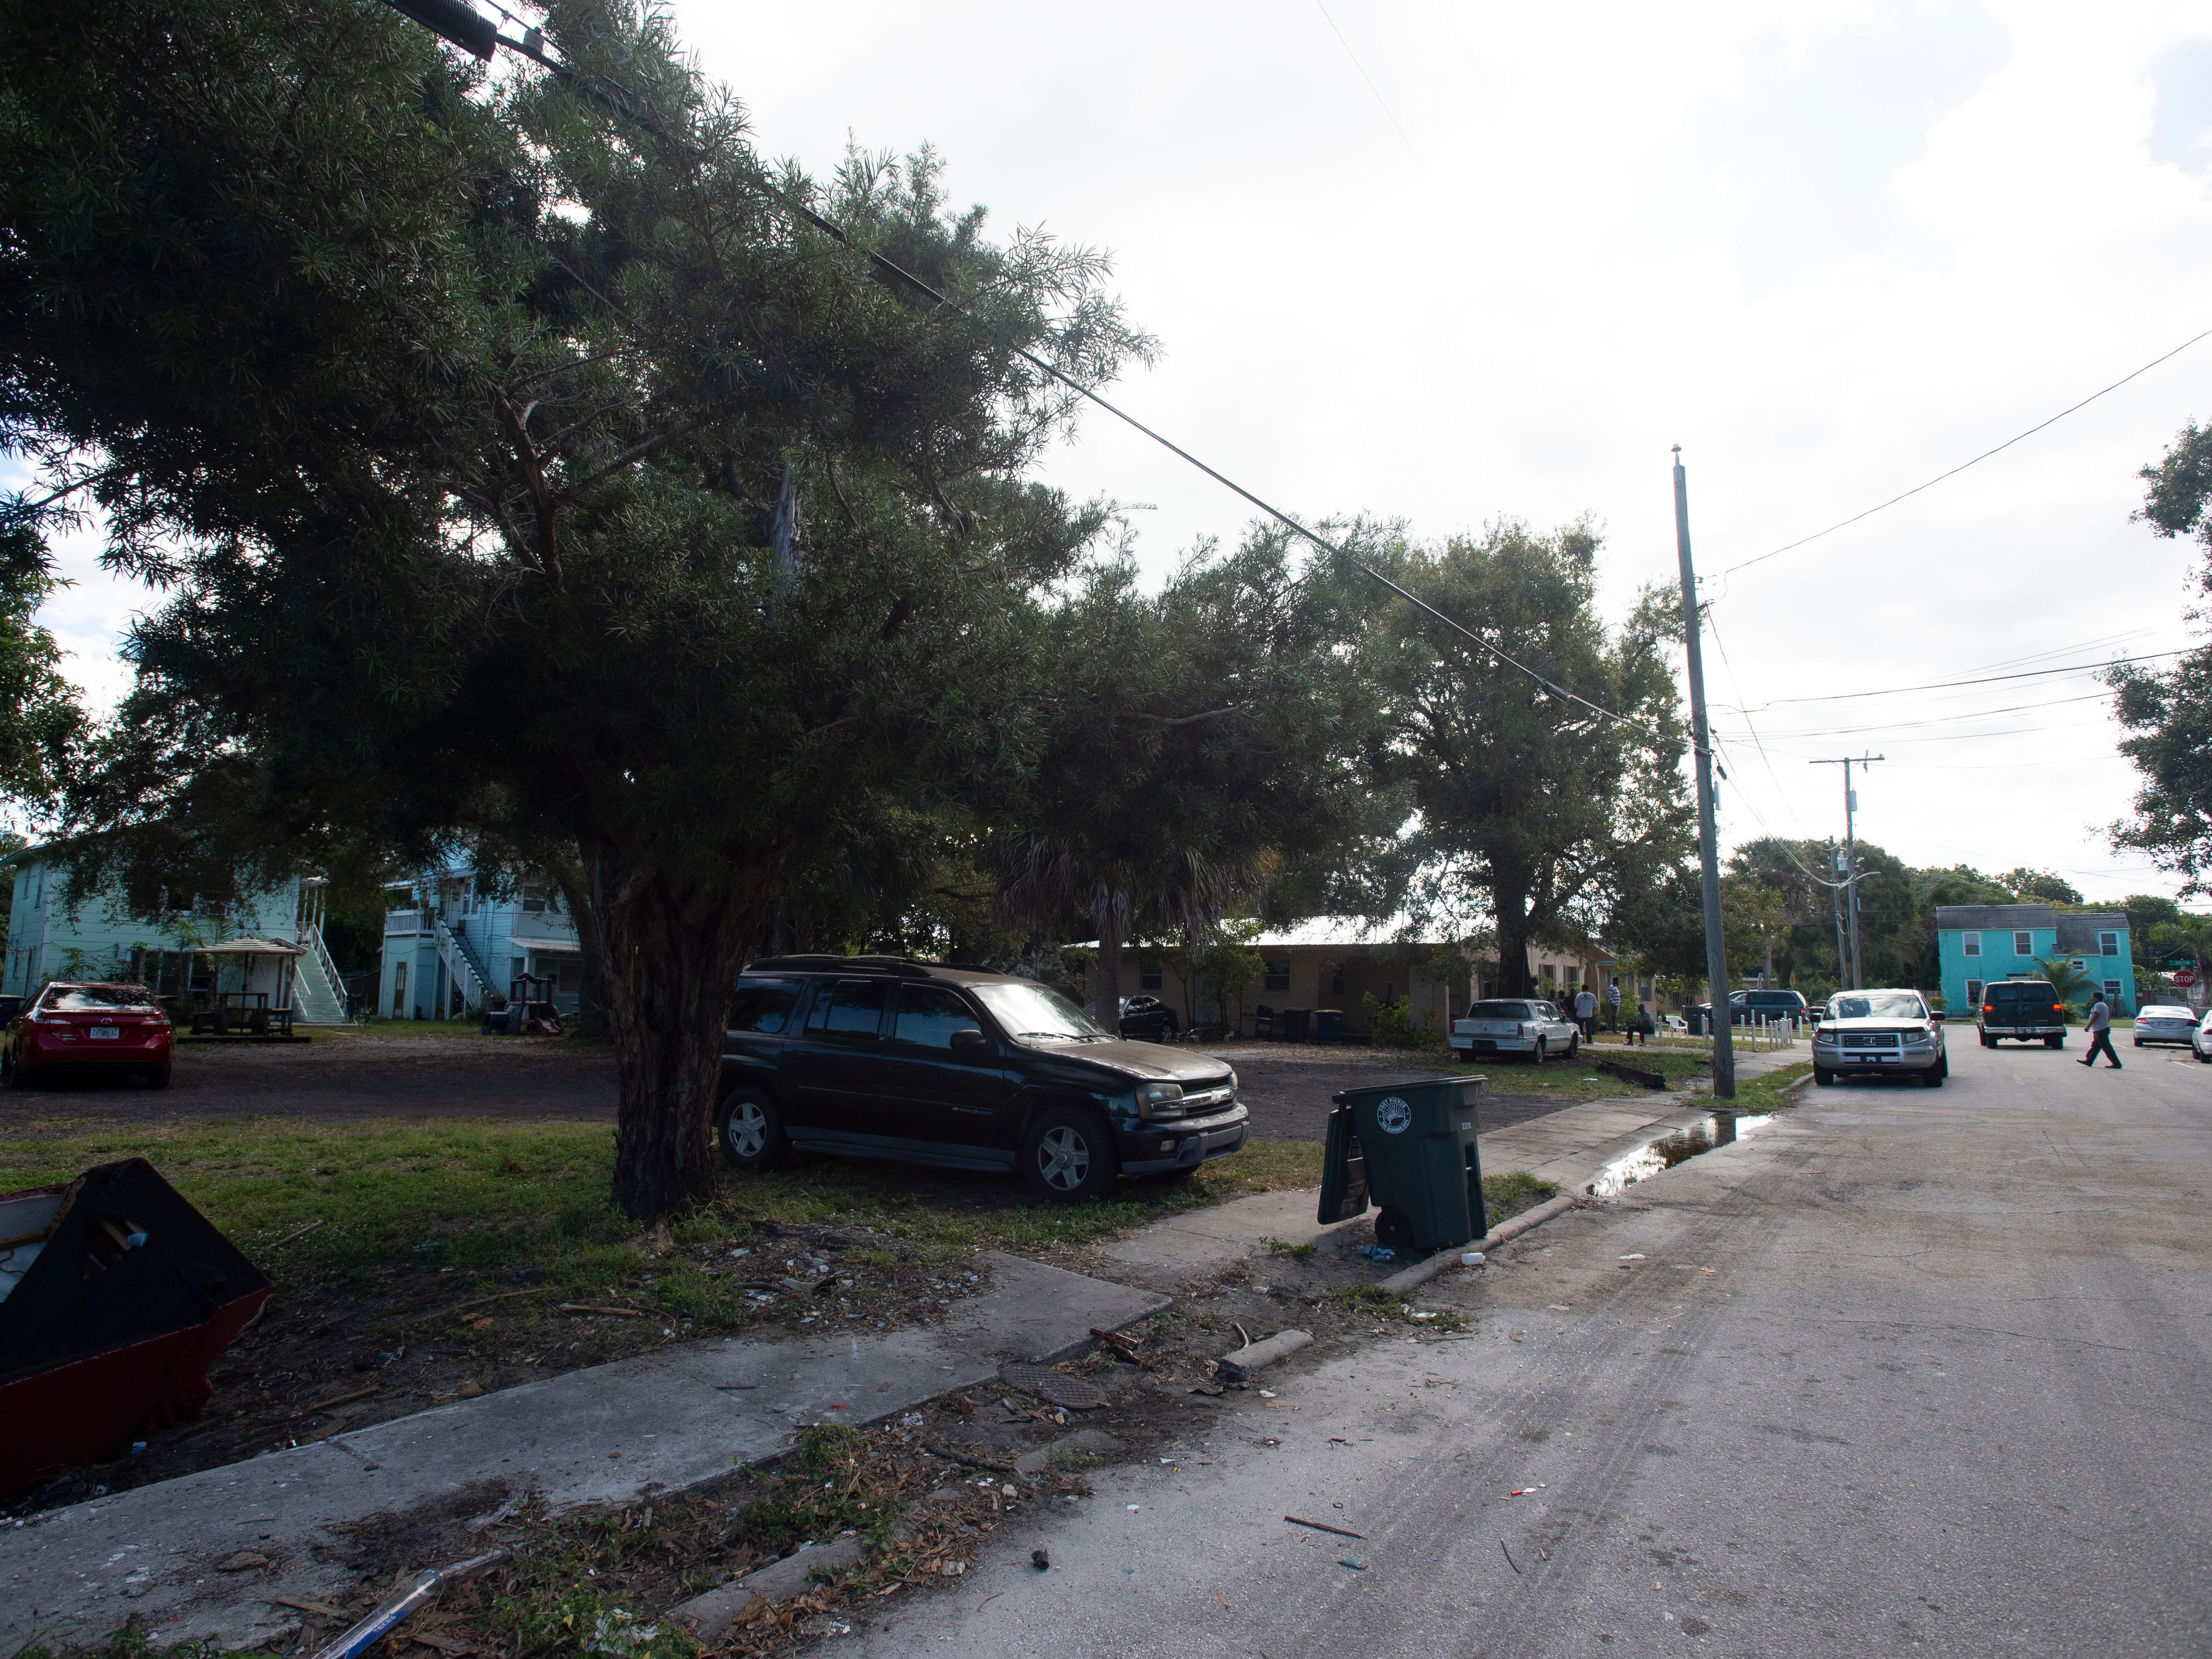 The scene of a Fort Pierce Police Department officer-involved shooting, where one suspect was left dead and a victim was left in critical condition, seen Dec. 7, 2018, the morning after the disturbance, in the 100 block of Alma Court in Fort Pierce.